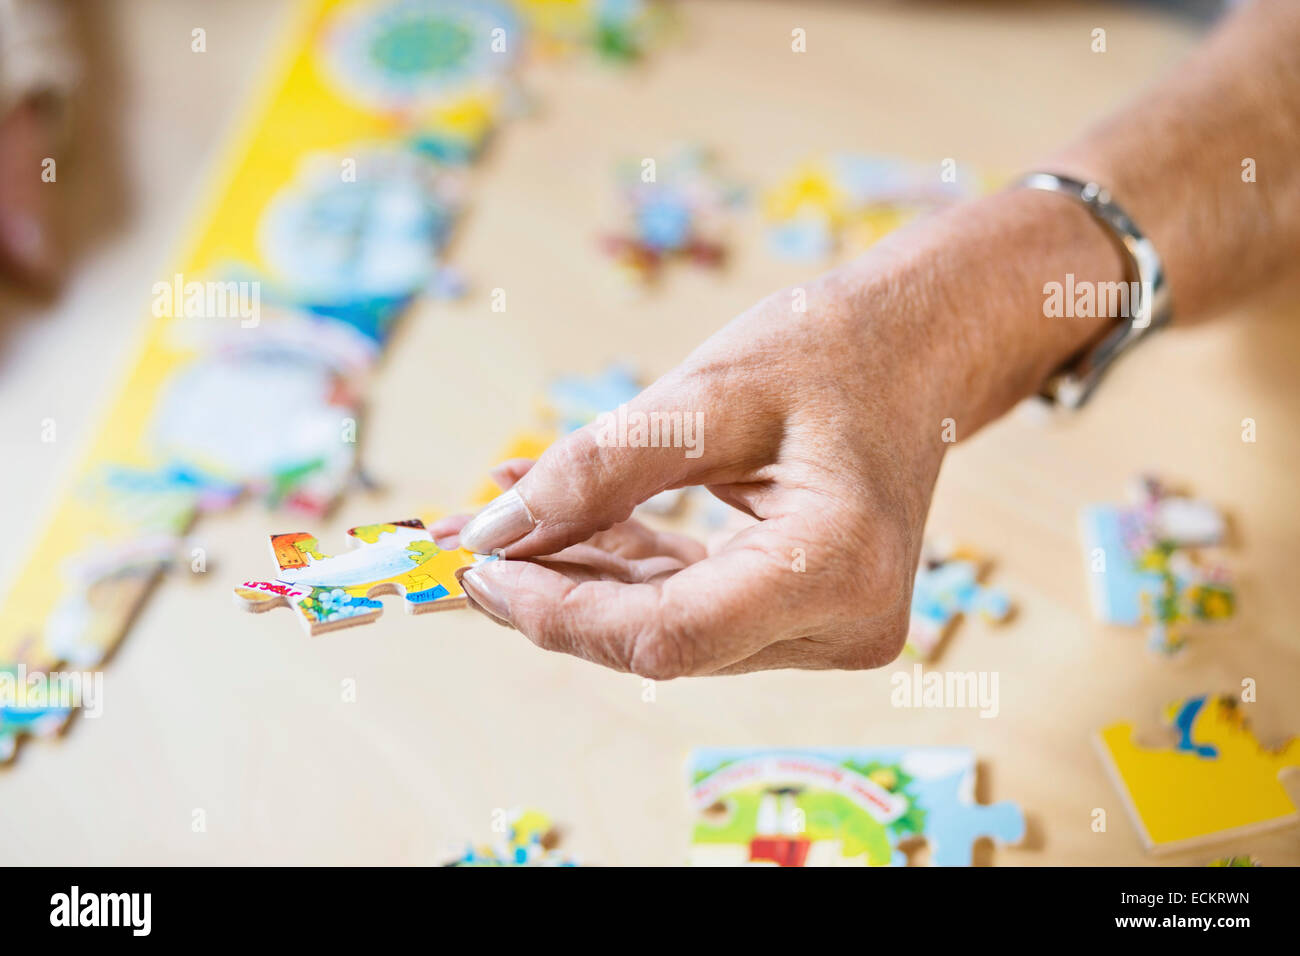 Cropped image of senior woman's hand holding jigsaw piece at table in nursing home - Stock Image